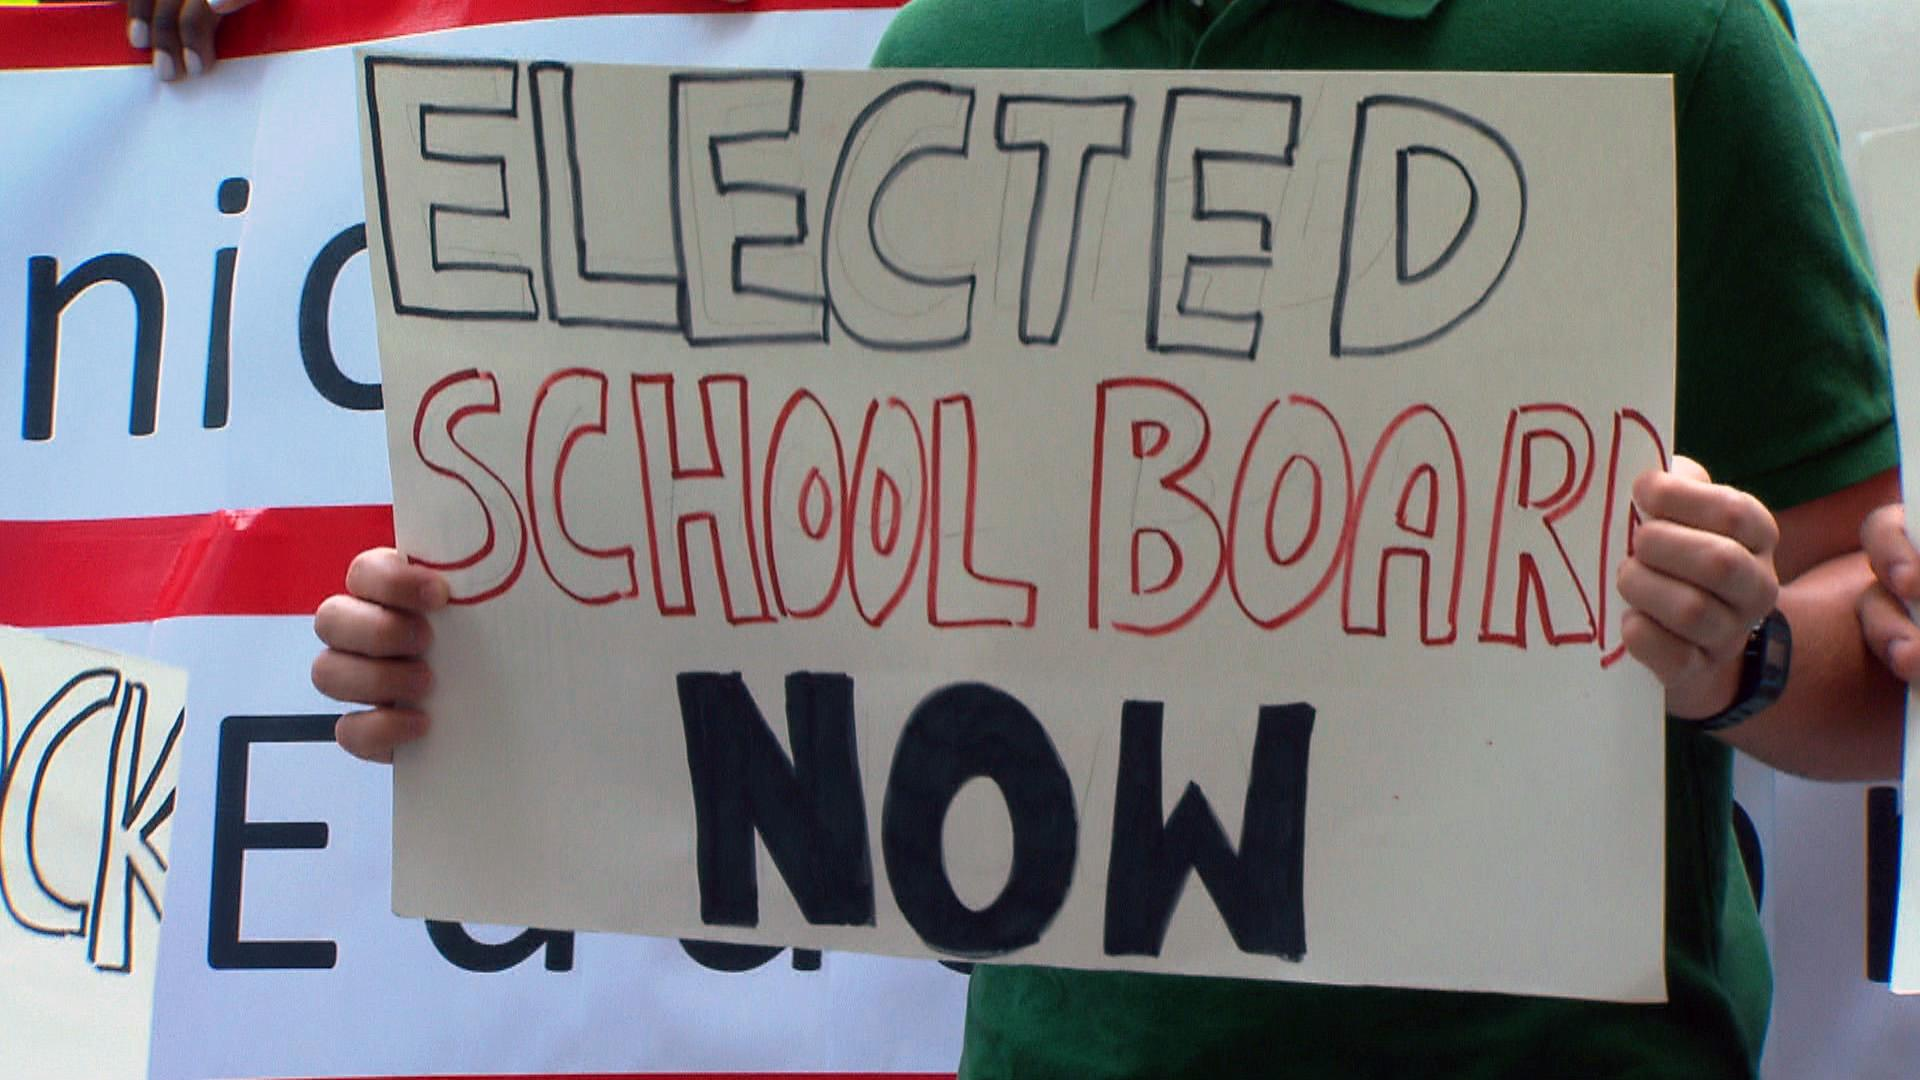 Supporters of an elected school board demonstrate in April 2019. (WTTW News)